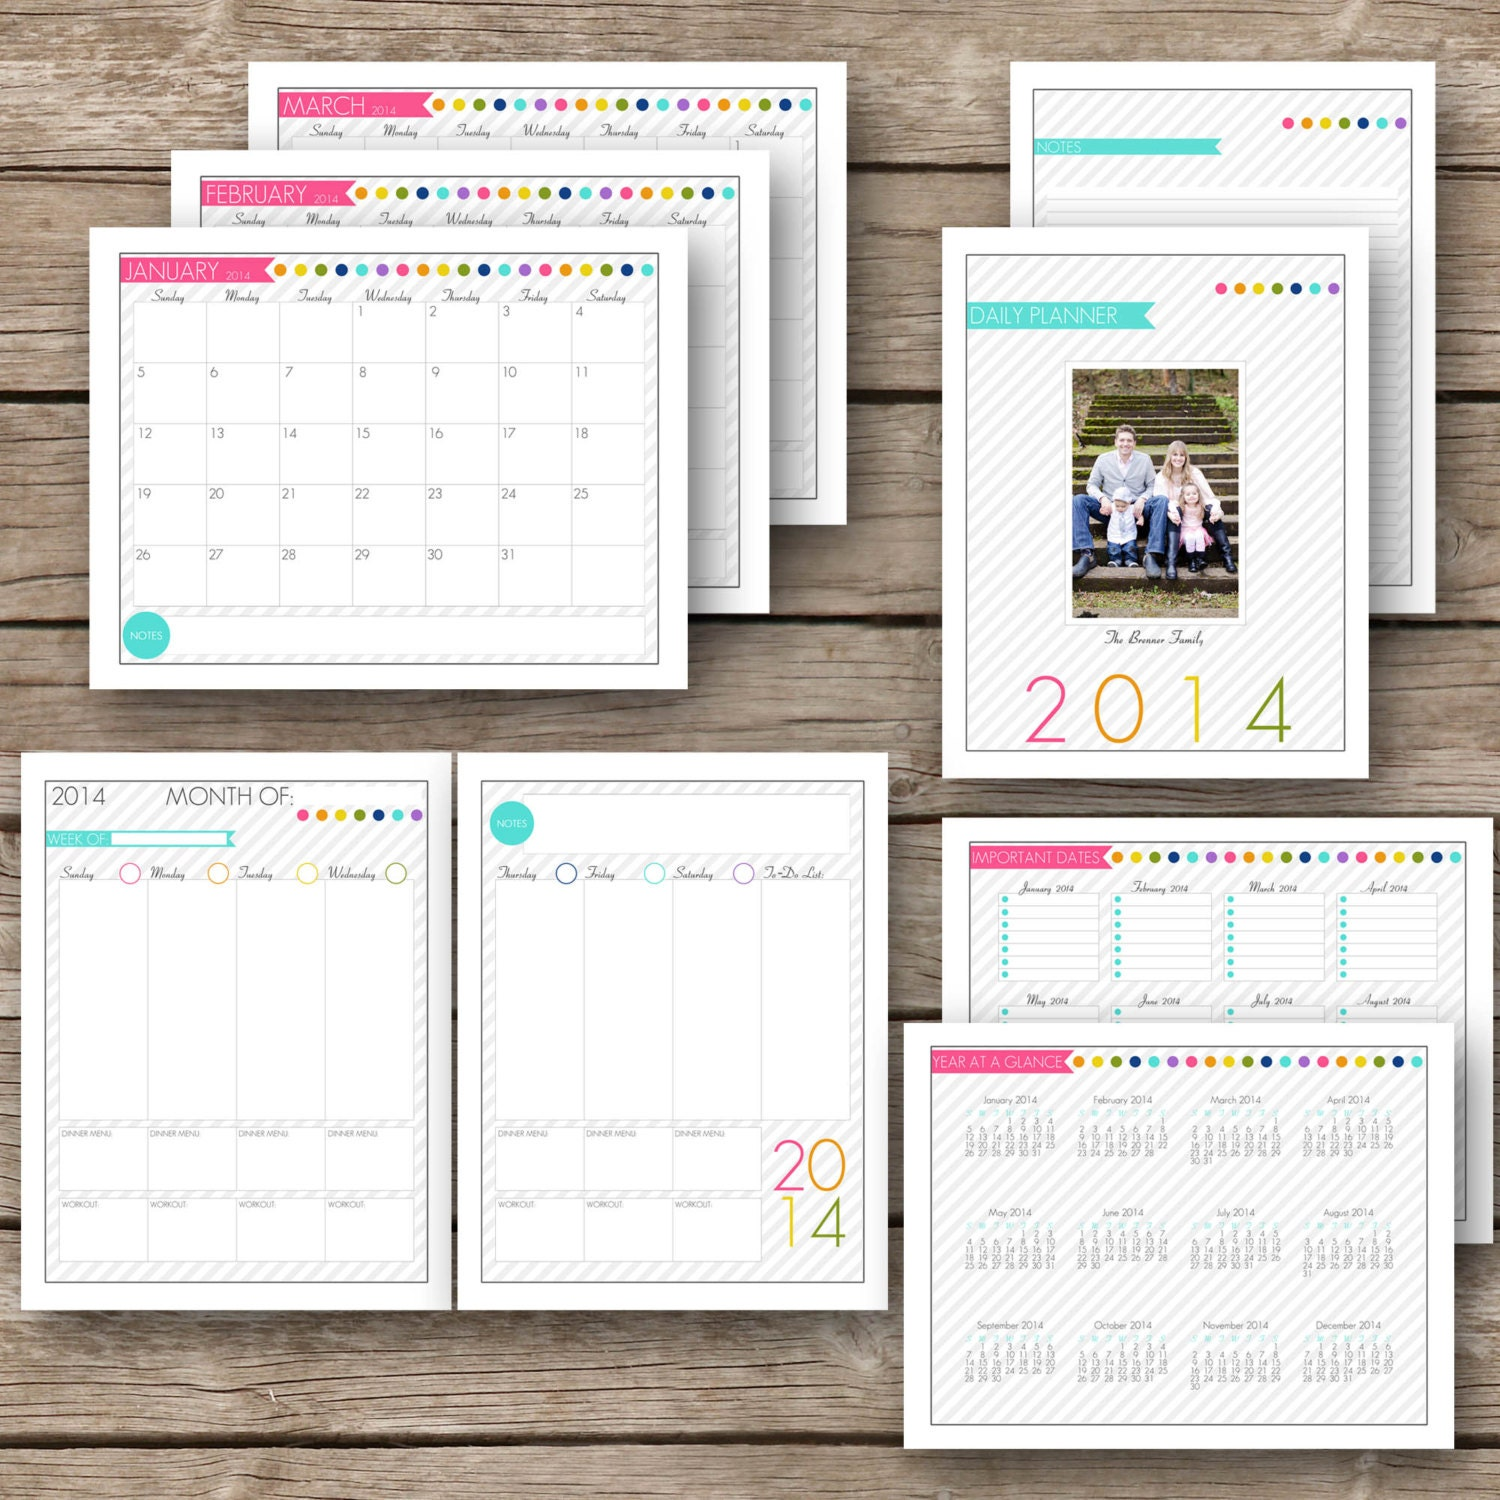 Printable Daily Planner 2014 Personalized 2014 complete day